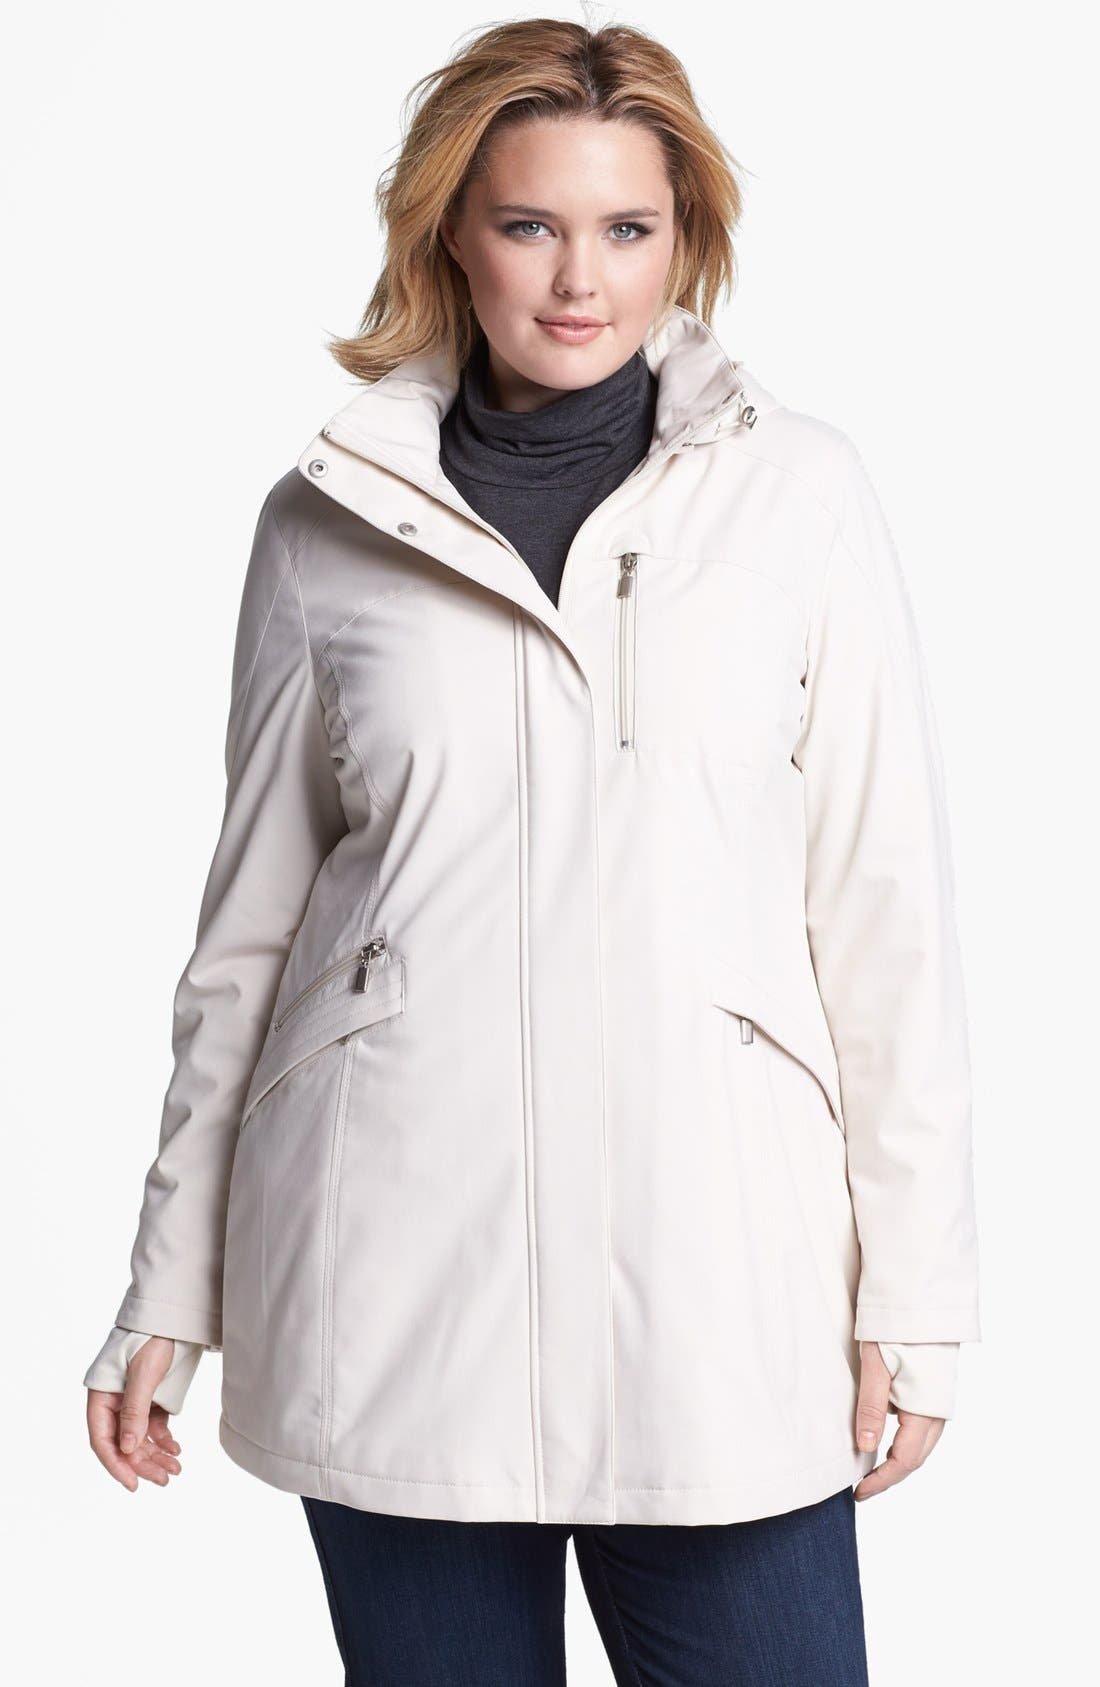 Alternate Image 1 Selected - Kristen Blake Raincoat with Detachable Hood (Plus Size)